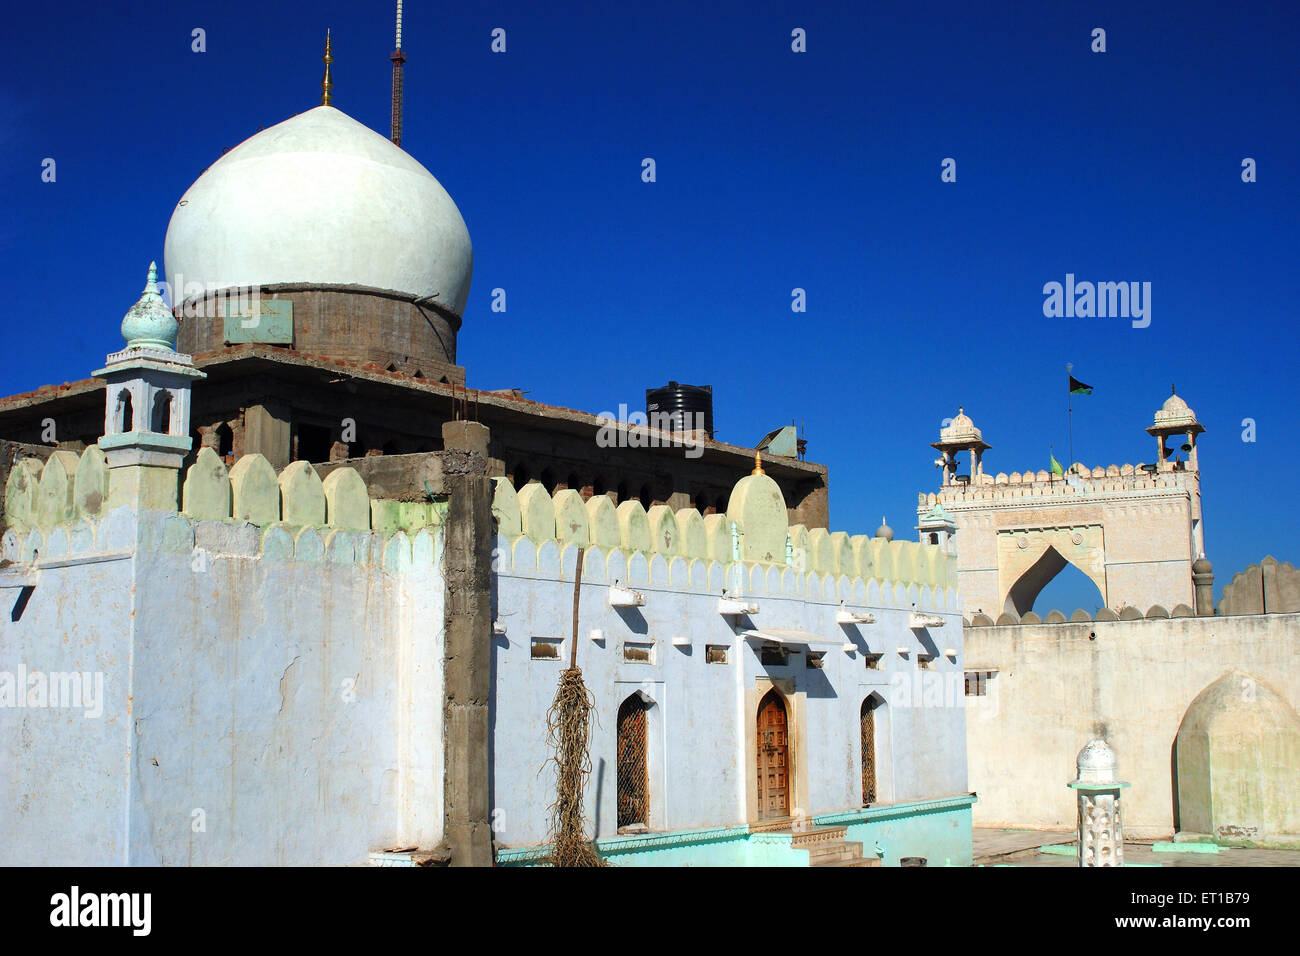 Ajmer dargah ajmer shrine stock photos ajmer dargah ajmer shrine dargah taragarh ajmer rajasthan india stock image thecheapjerseys Image collections